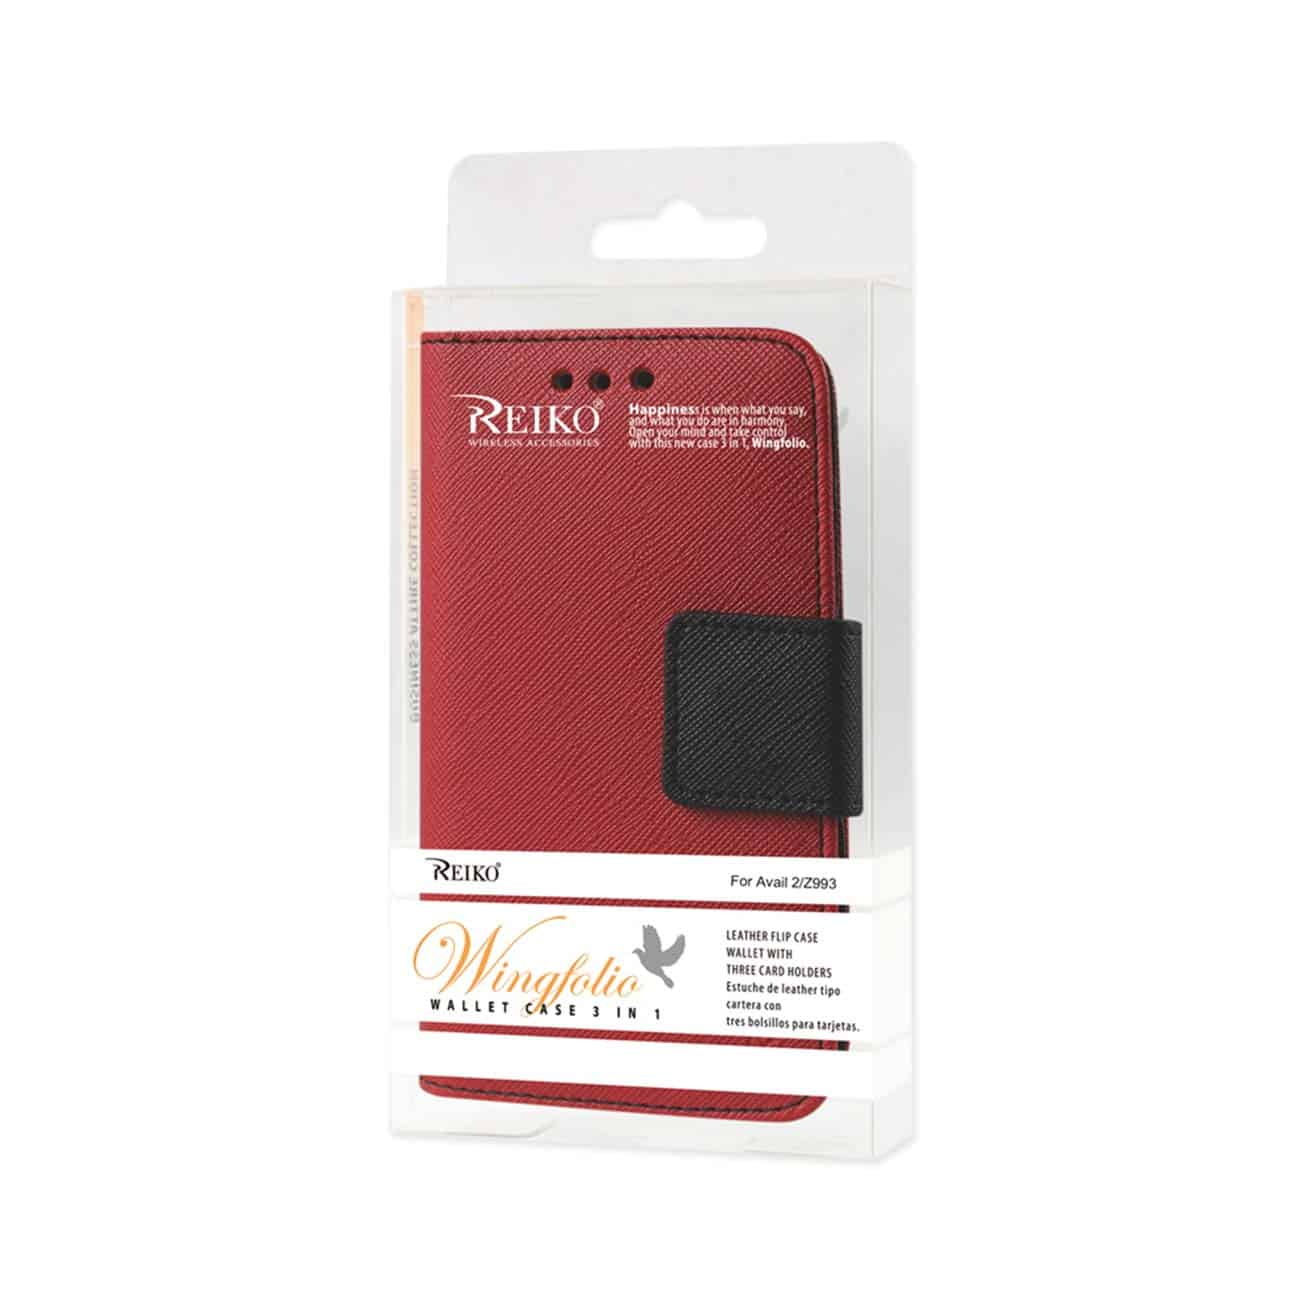 ZTE PRELUDE 3-IN-1 WALLET CASE IN RED